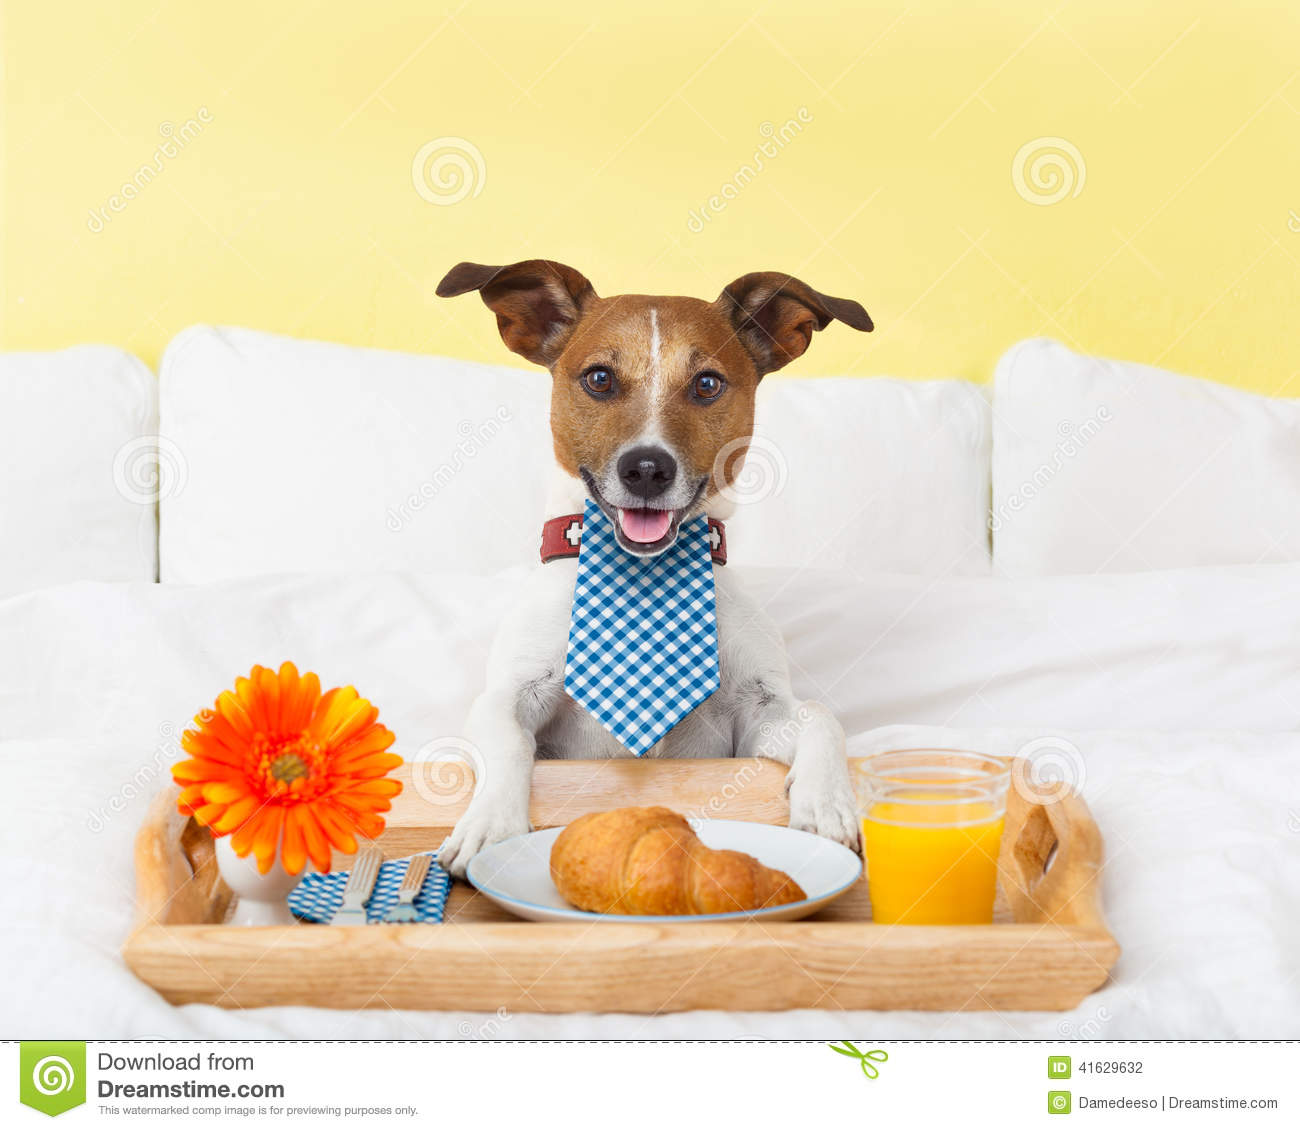 Breakfast In Bed Stock Photo - Image: 41629632